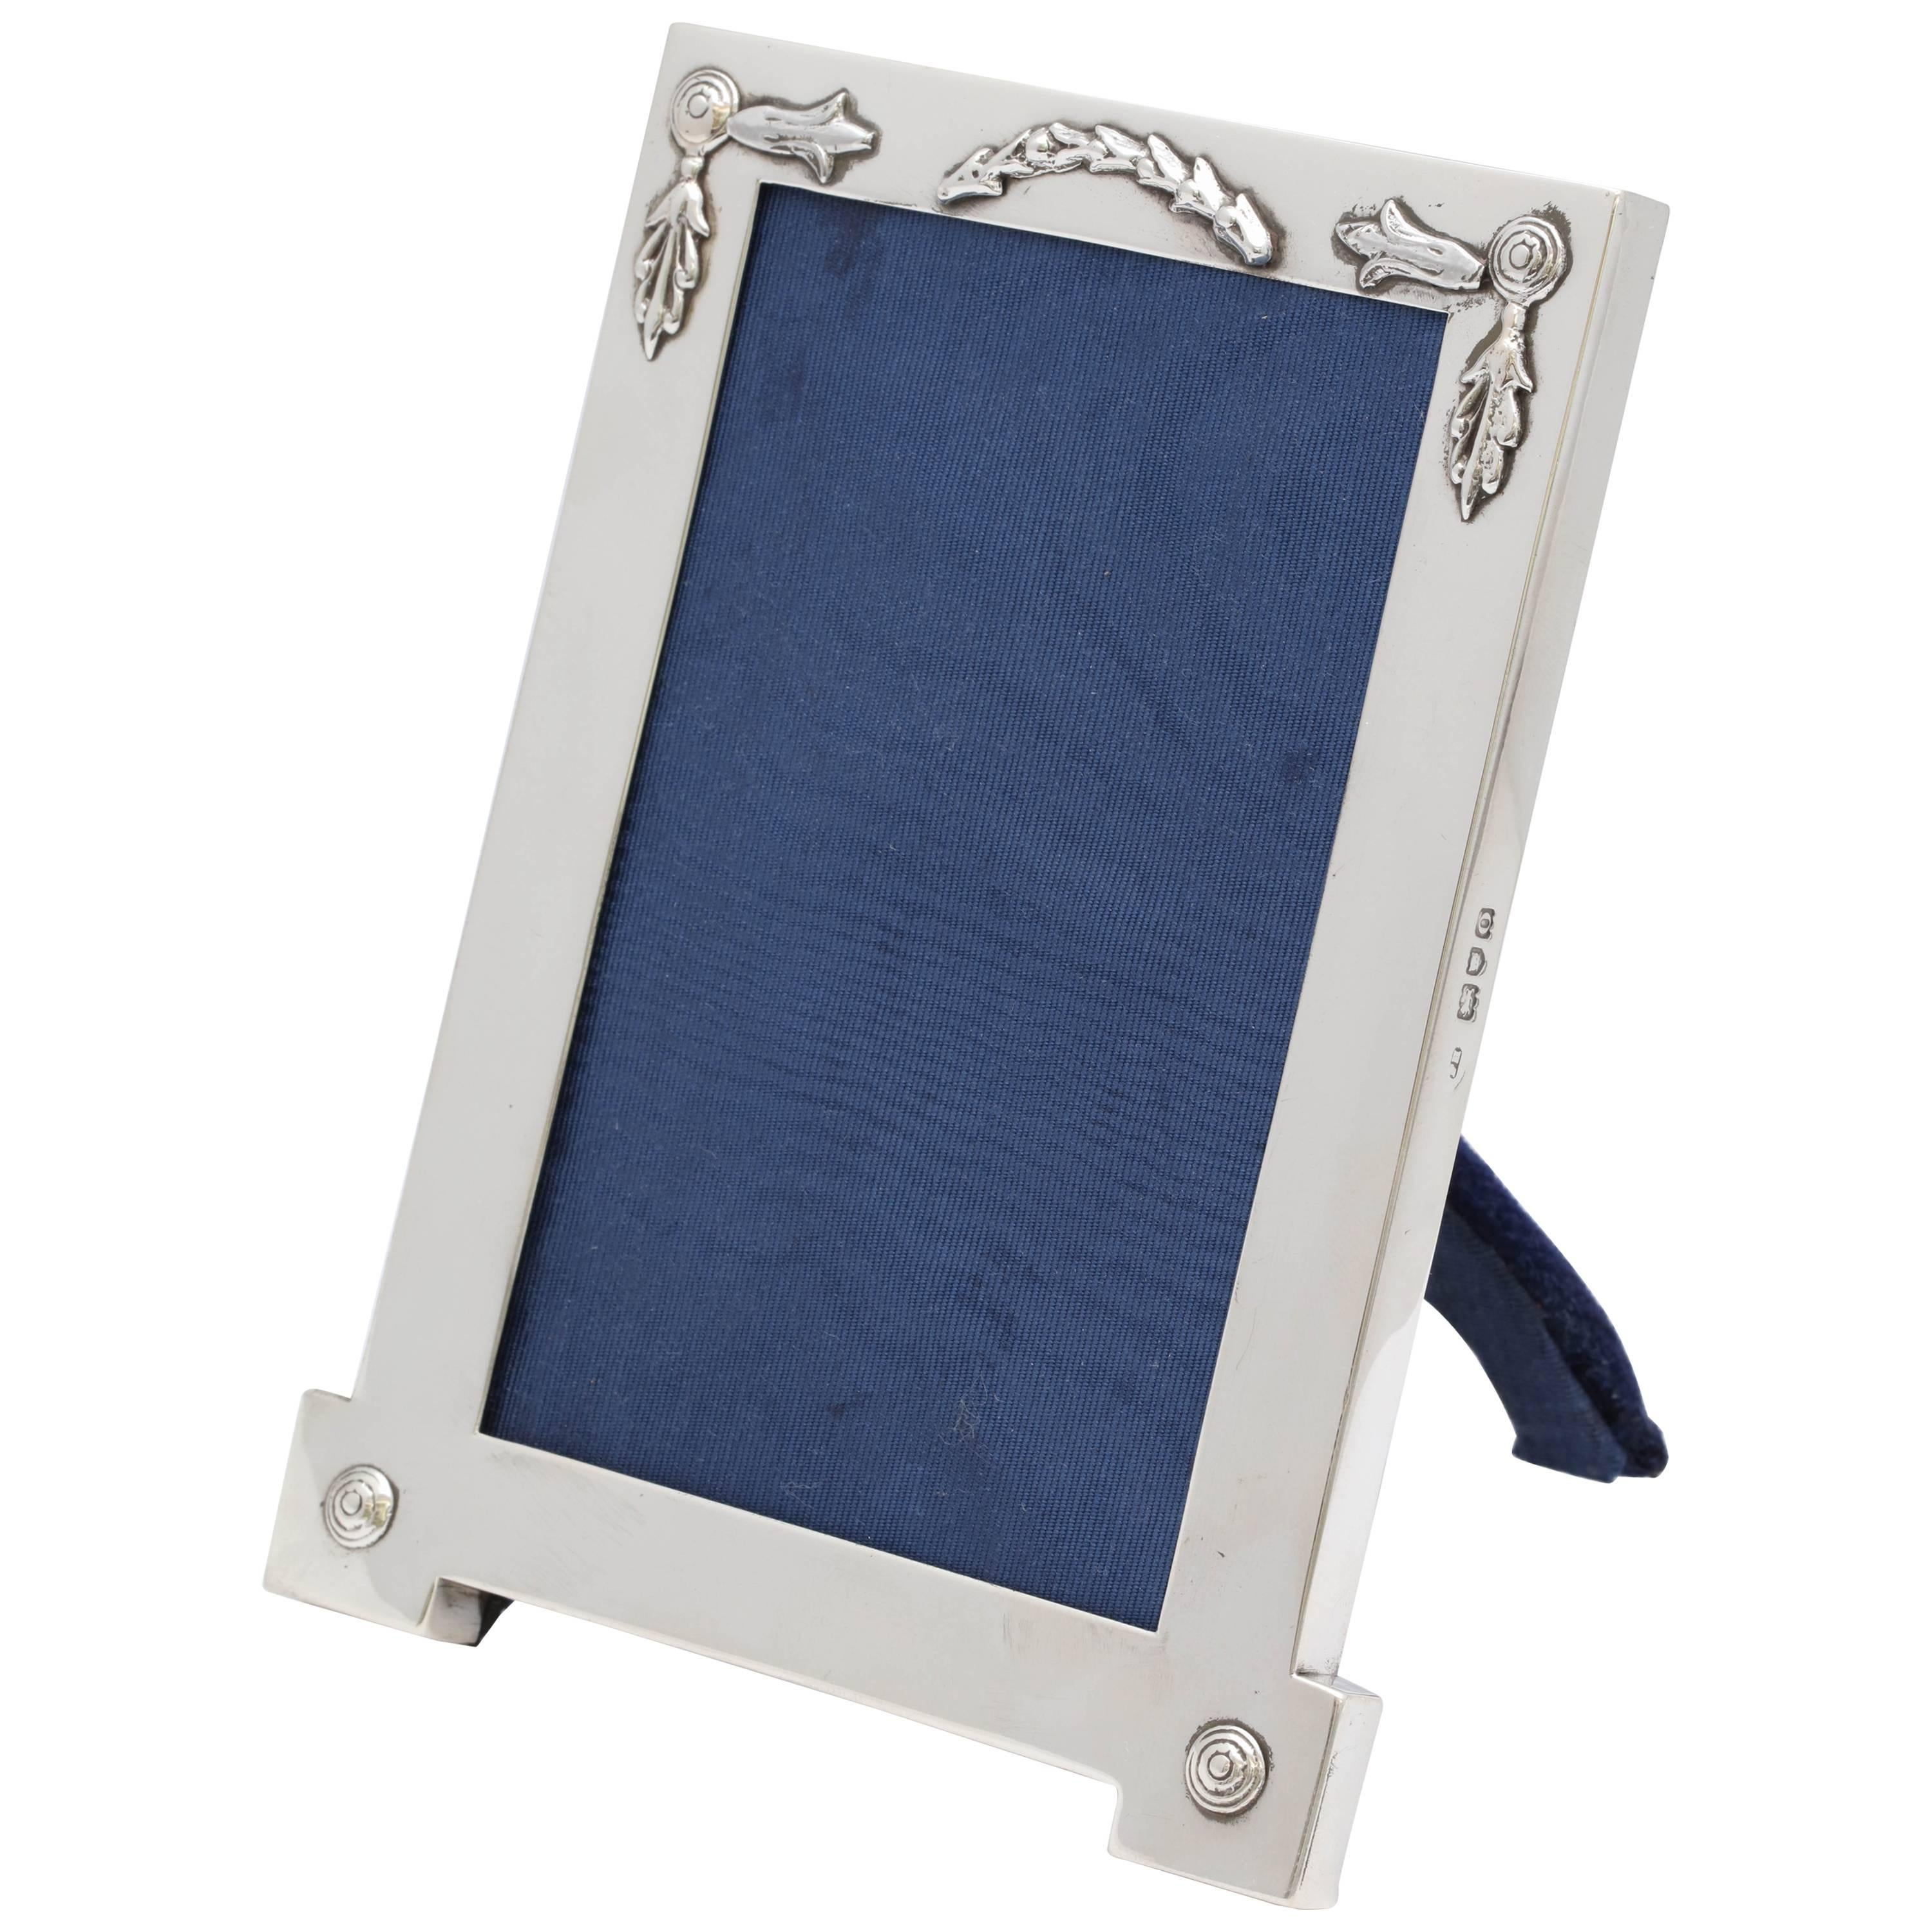 Rare, Unusual Edwardian Sterling Silver Footed Picture Frame